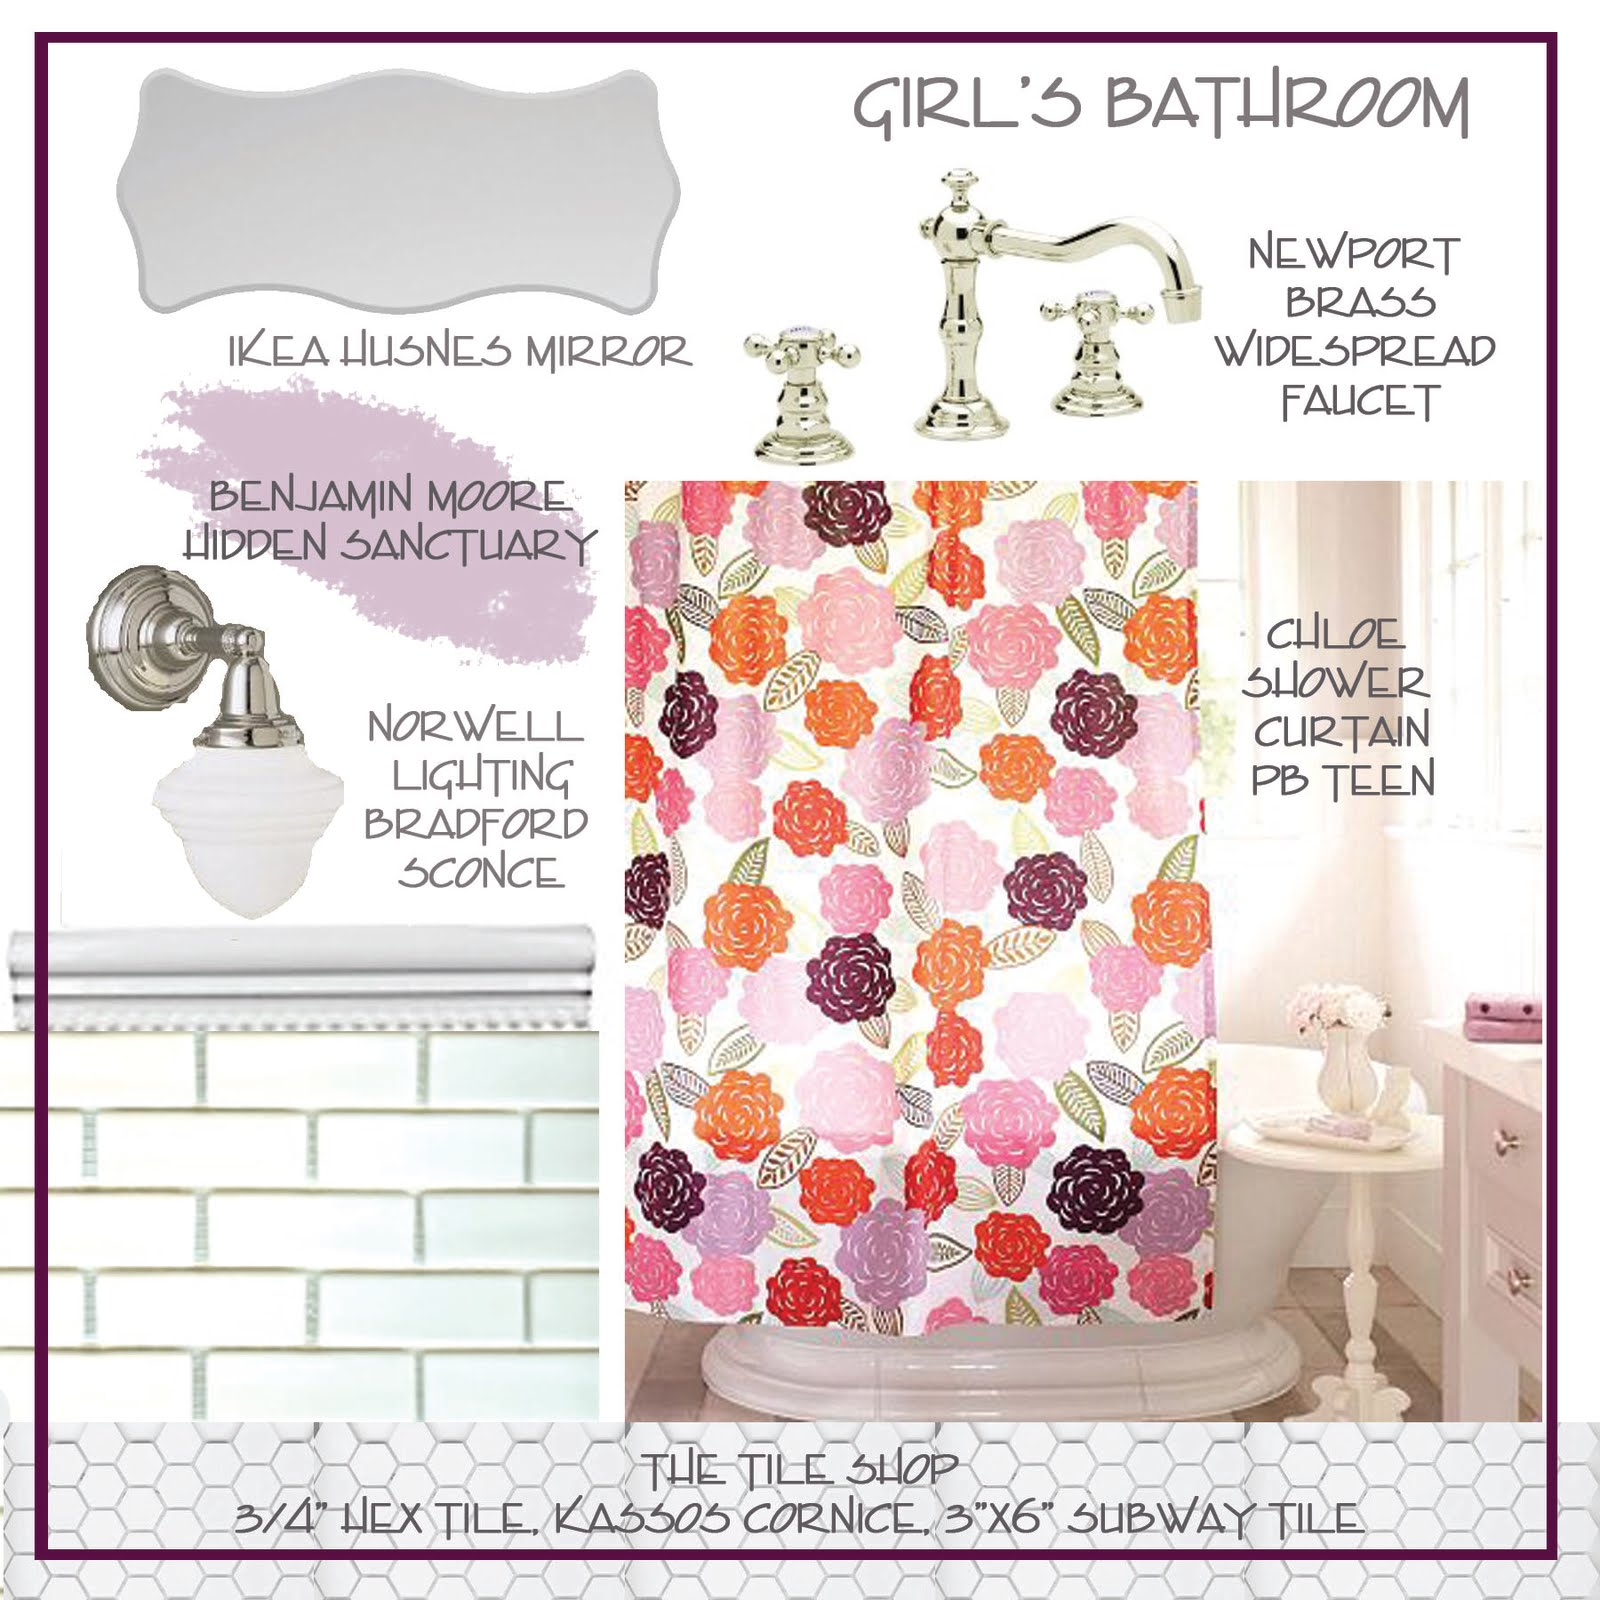 Welcome to Girl Land: Is It Fall Yet and Girl's Bathroom!